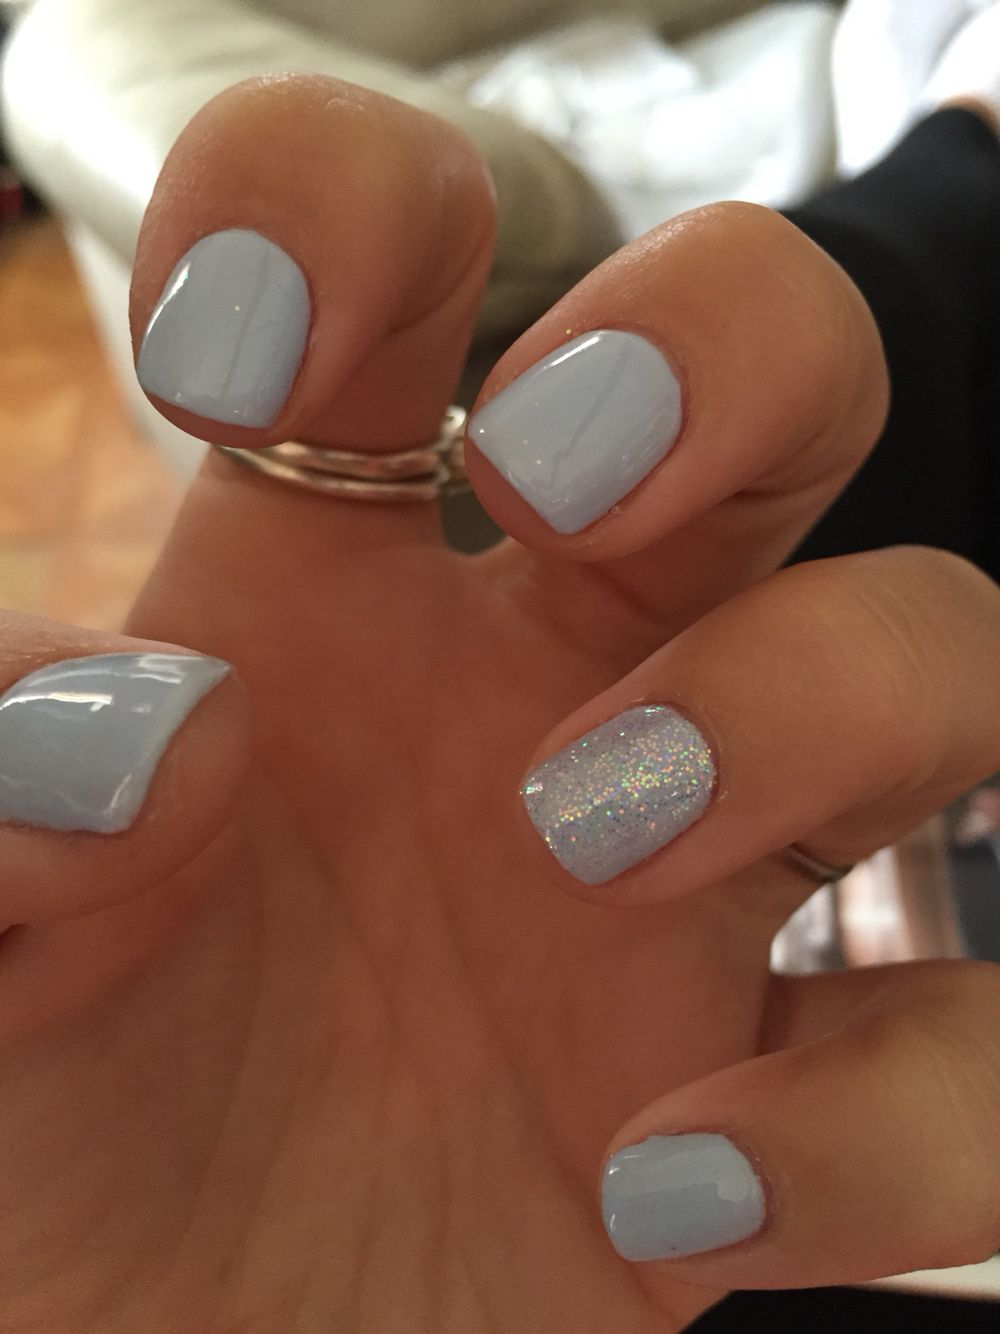 Nails inc gel nail colors and gel nail polish on pinterest - Done By Angel At All About You In Standish Winter Nails